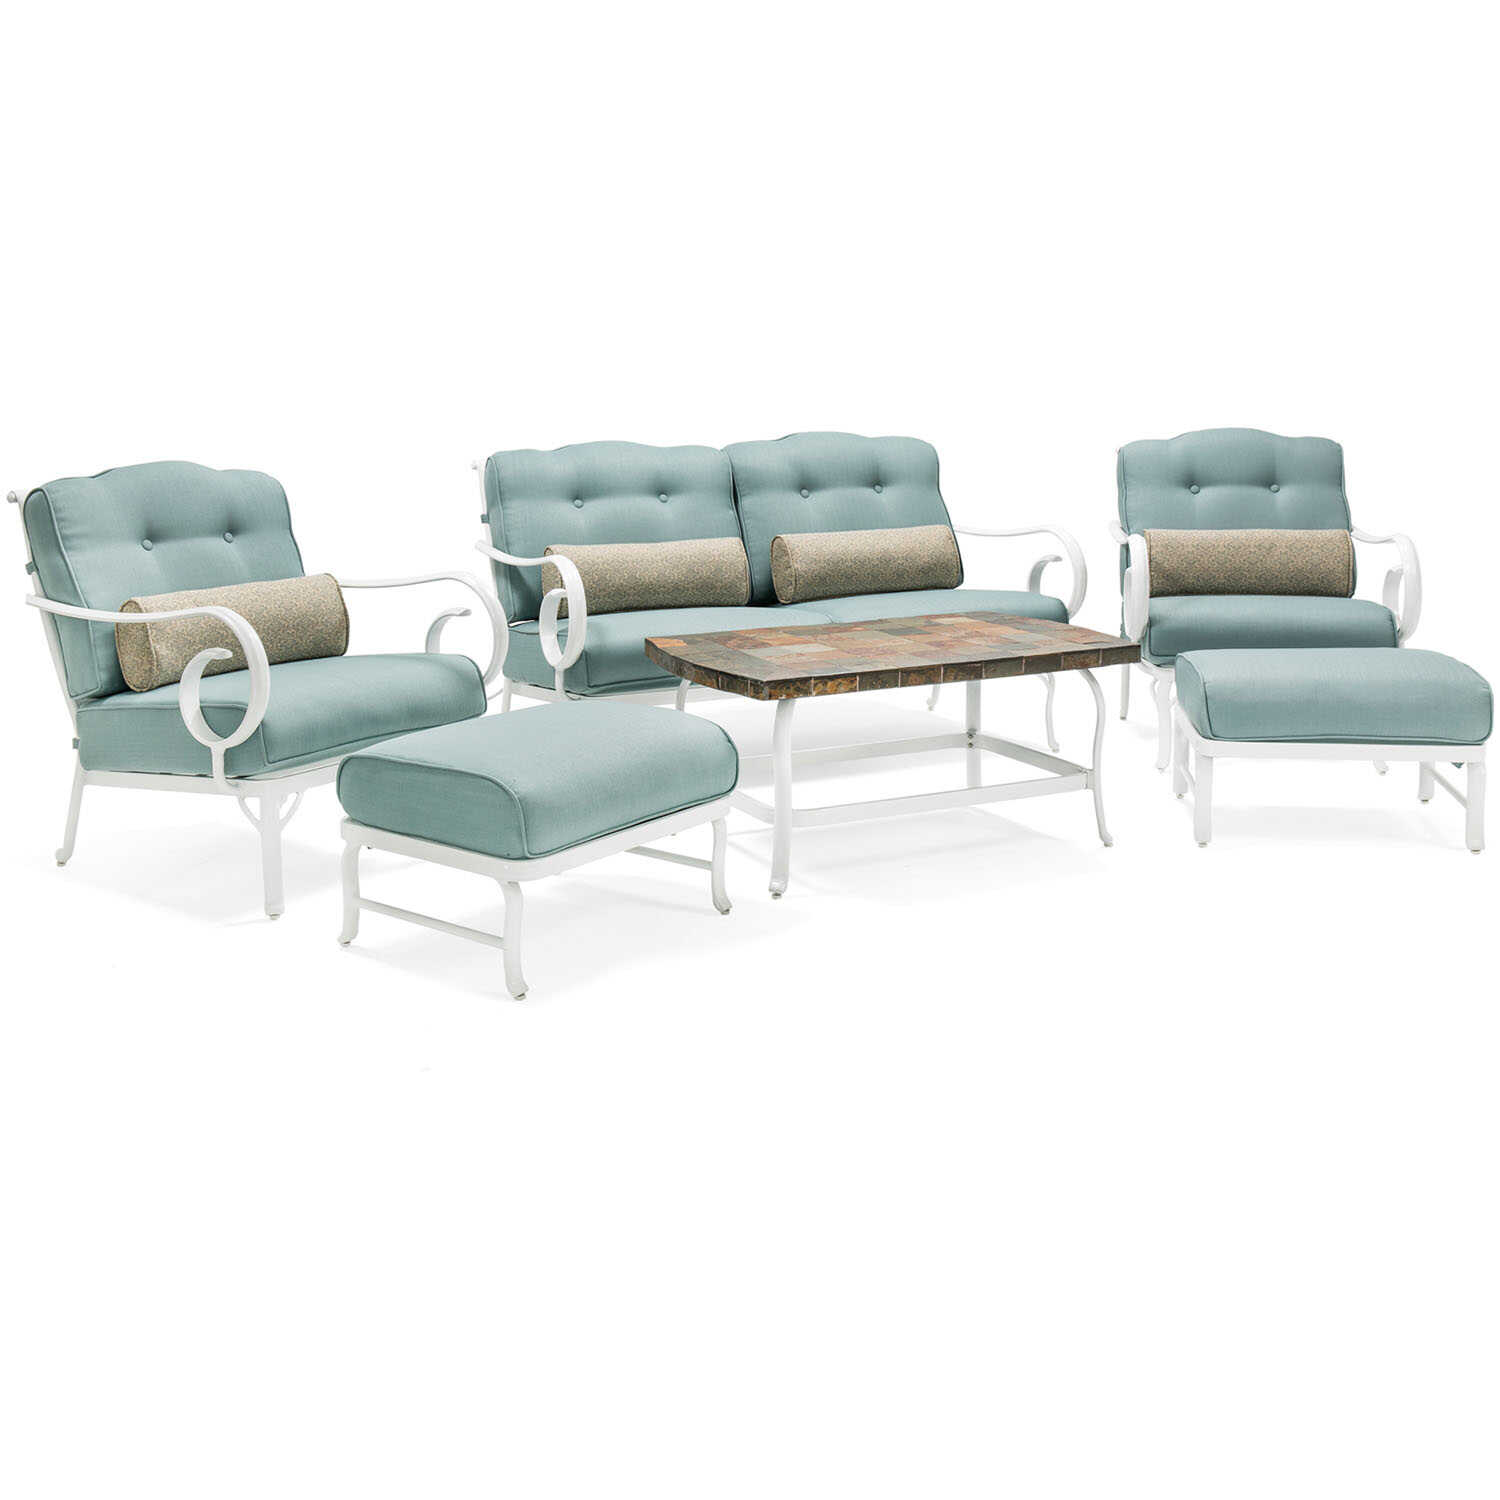 Hanover  Oceana  6 pc. White  Aluminum  Patio Set  Ocean Blue